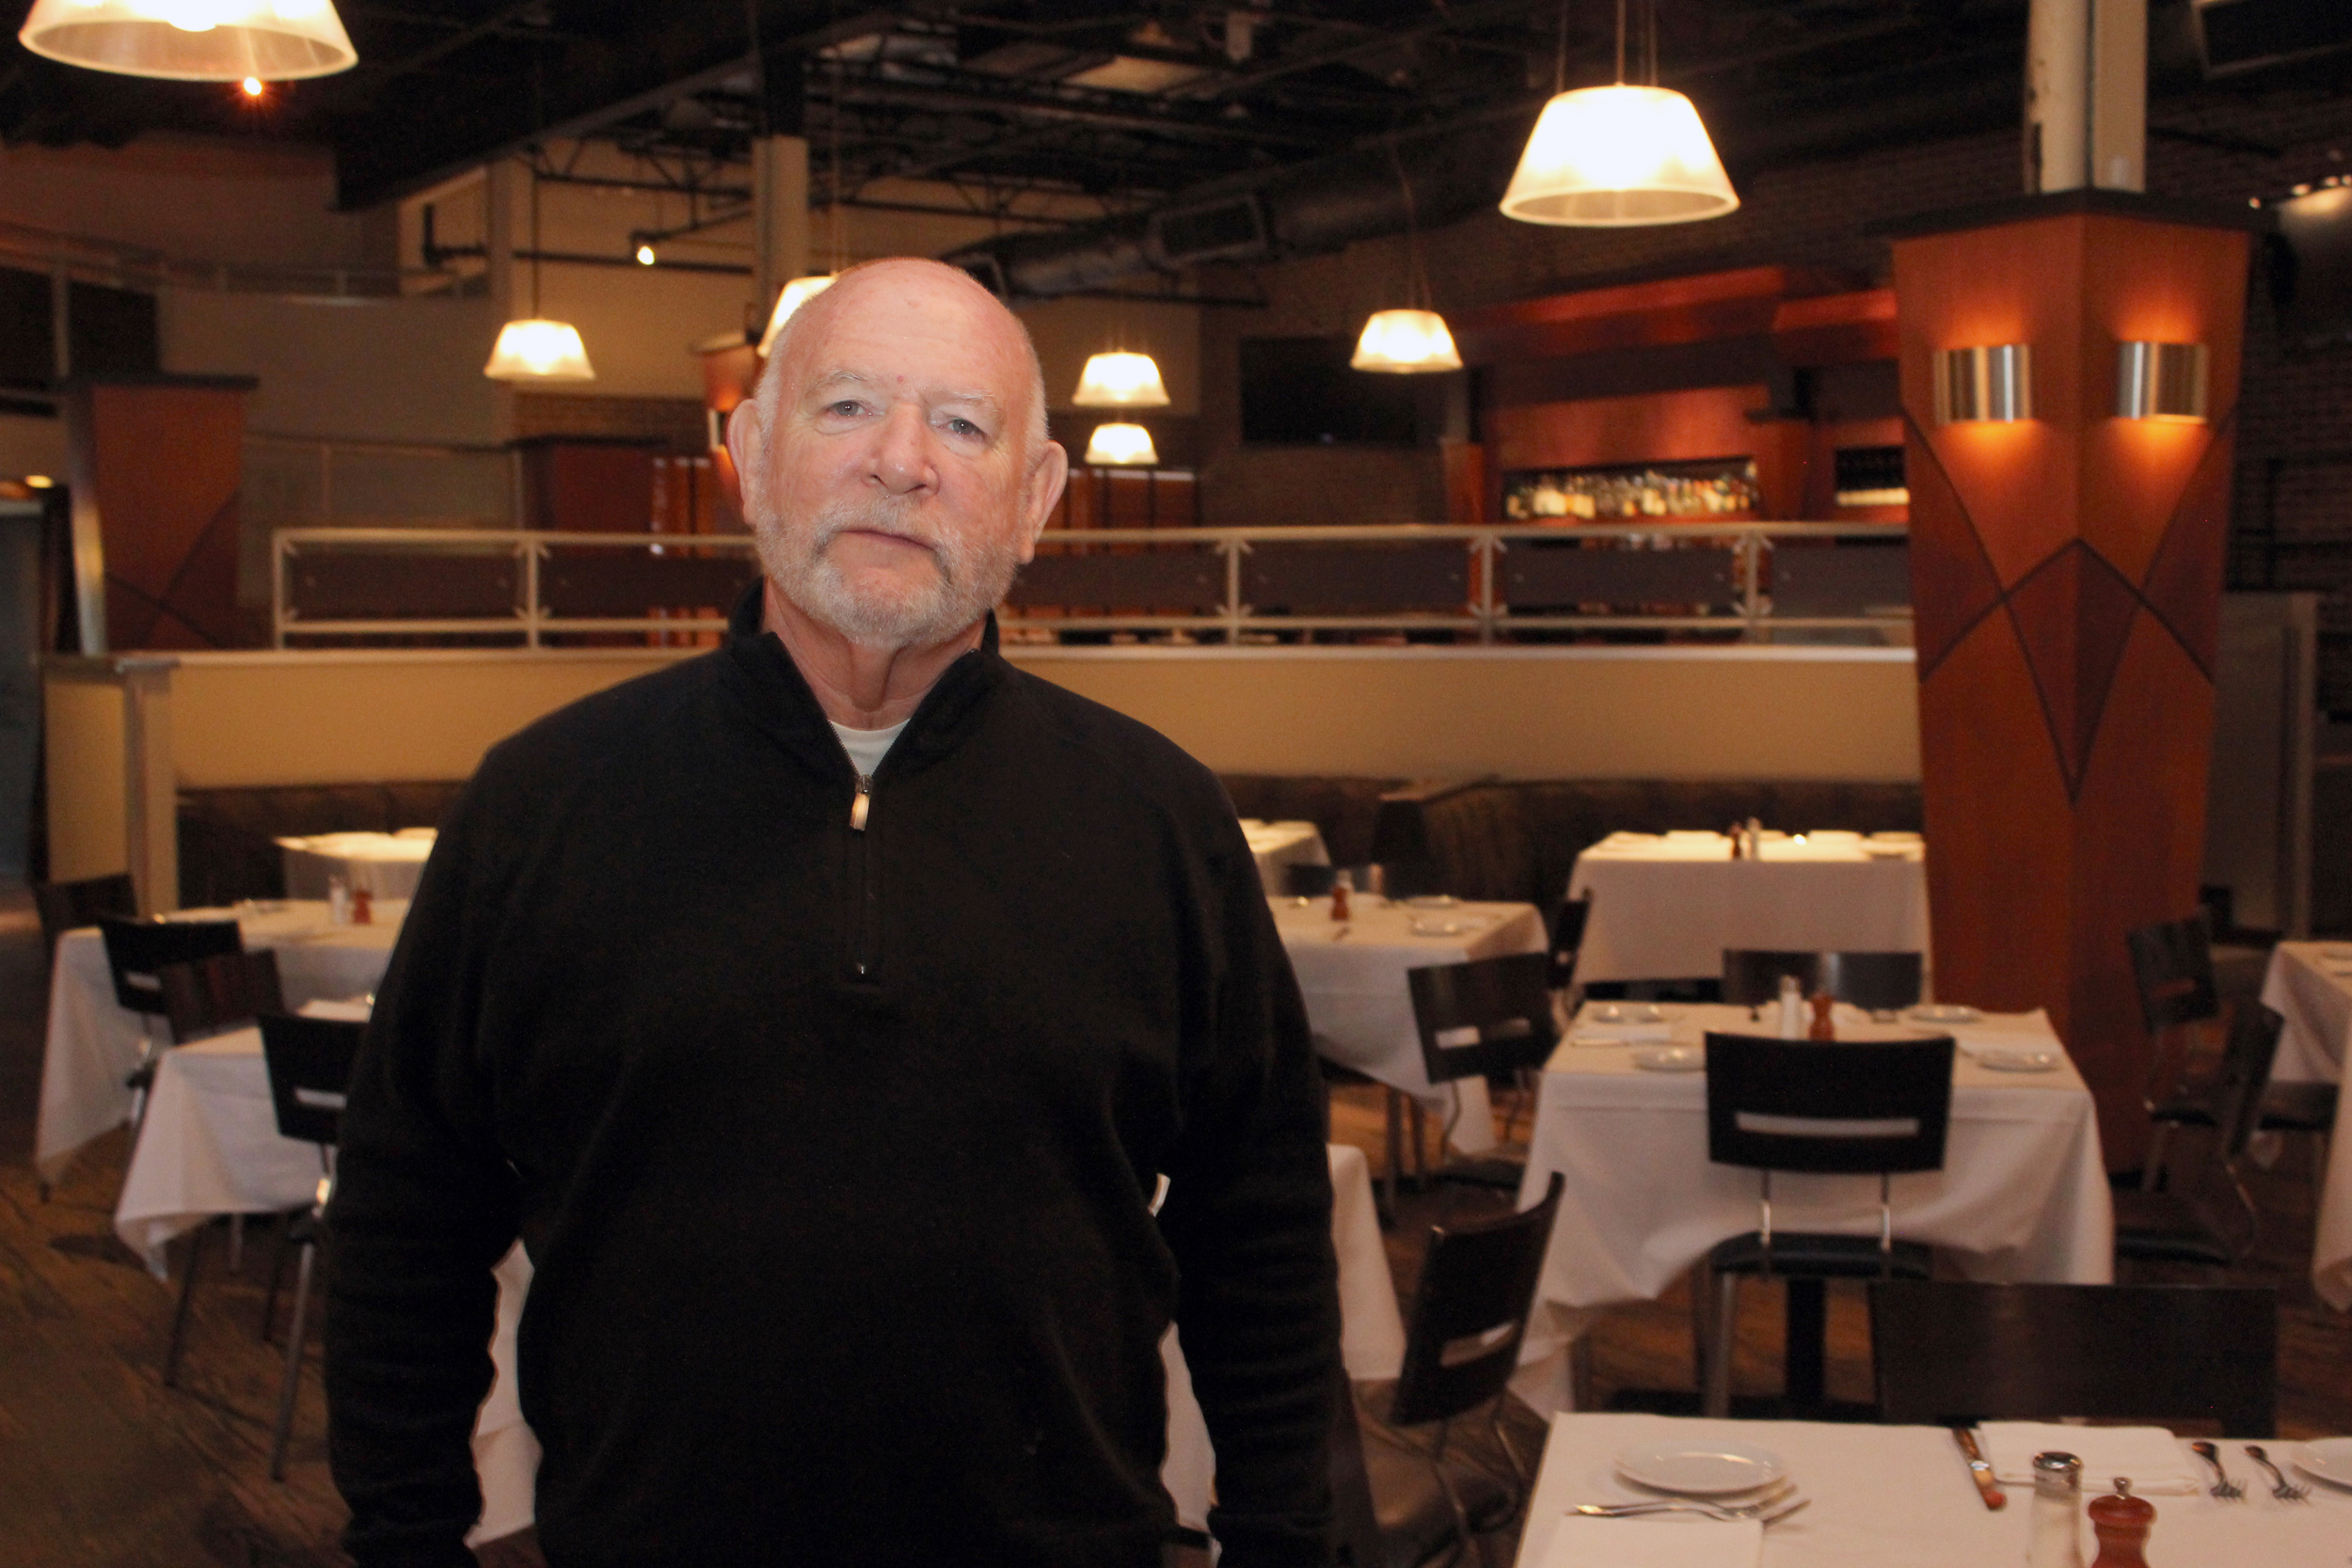 Brad Friedlander, one of four partners in Red Restaurant Group, stands in the dining room at Moxie the Restaurant in Beachwood, which he says has occasionally featured Asian dishes on its menu over the years.